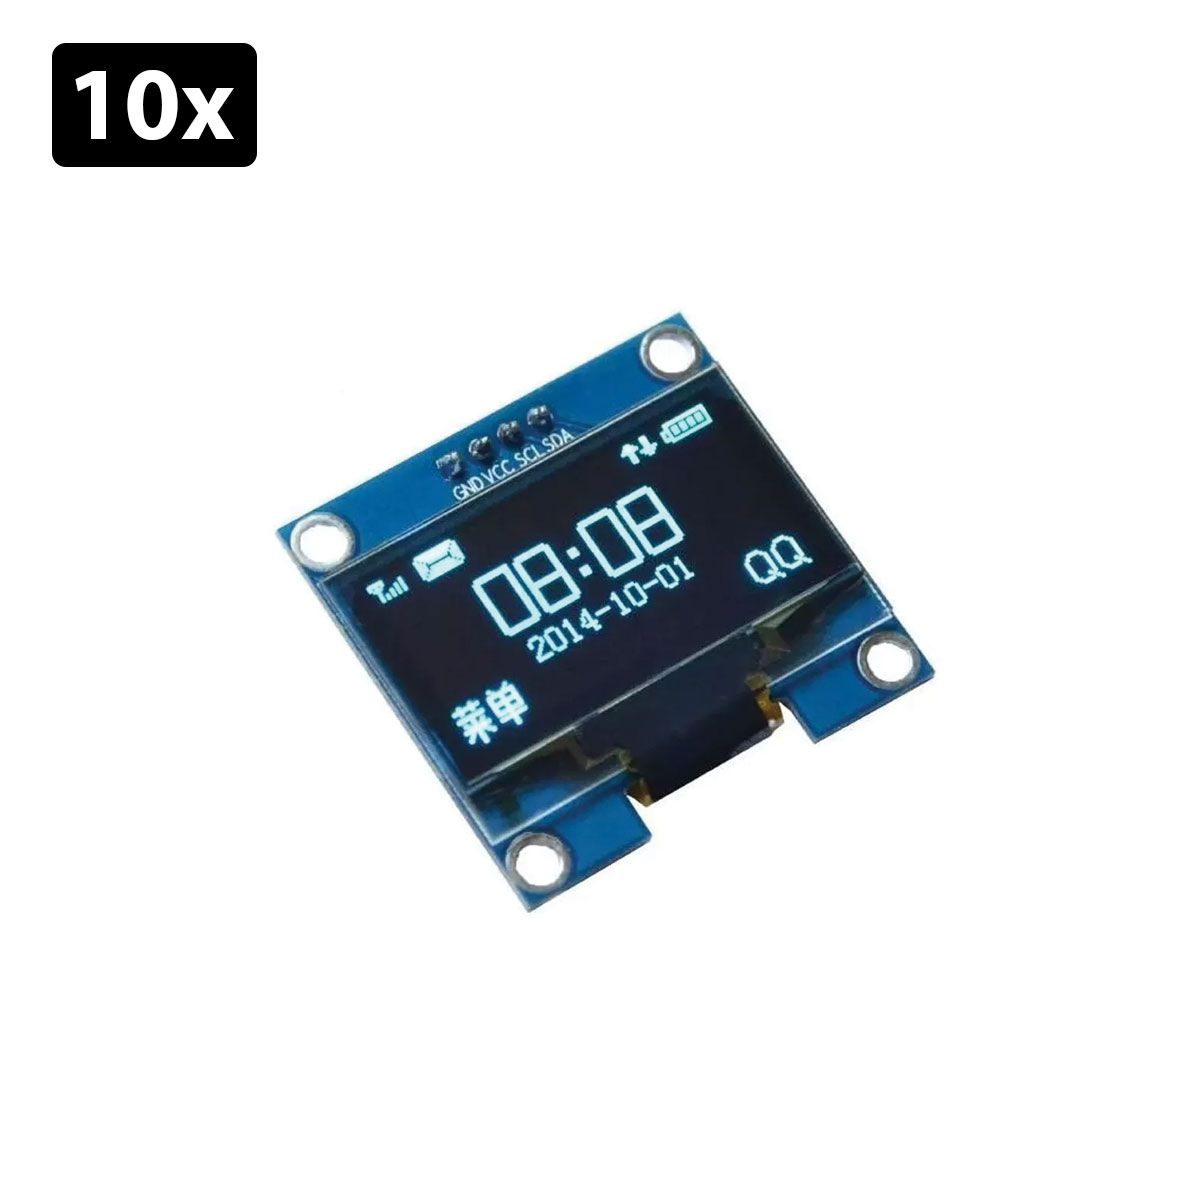 Kit com 10x Display Oled 128x64 Gráfico I2C Serial 0.96